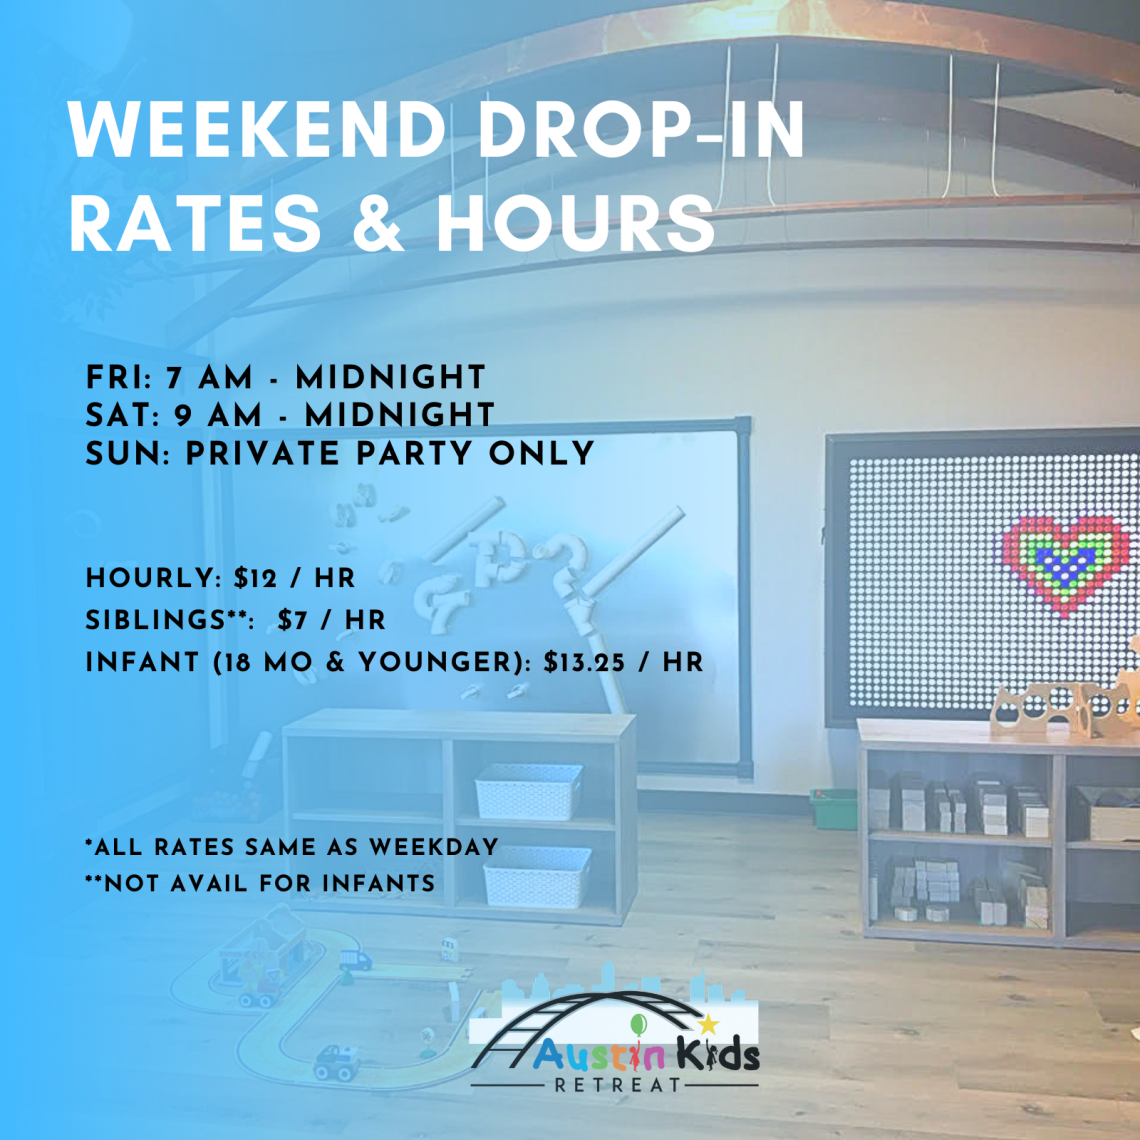 Hours for weekend drop-in daycare at Austin Kids Retreat